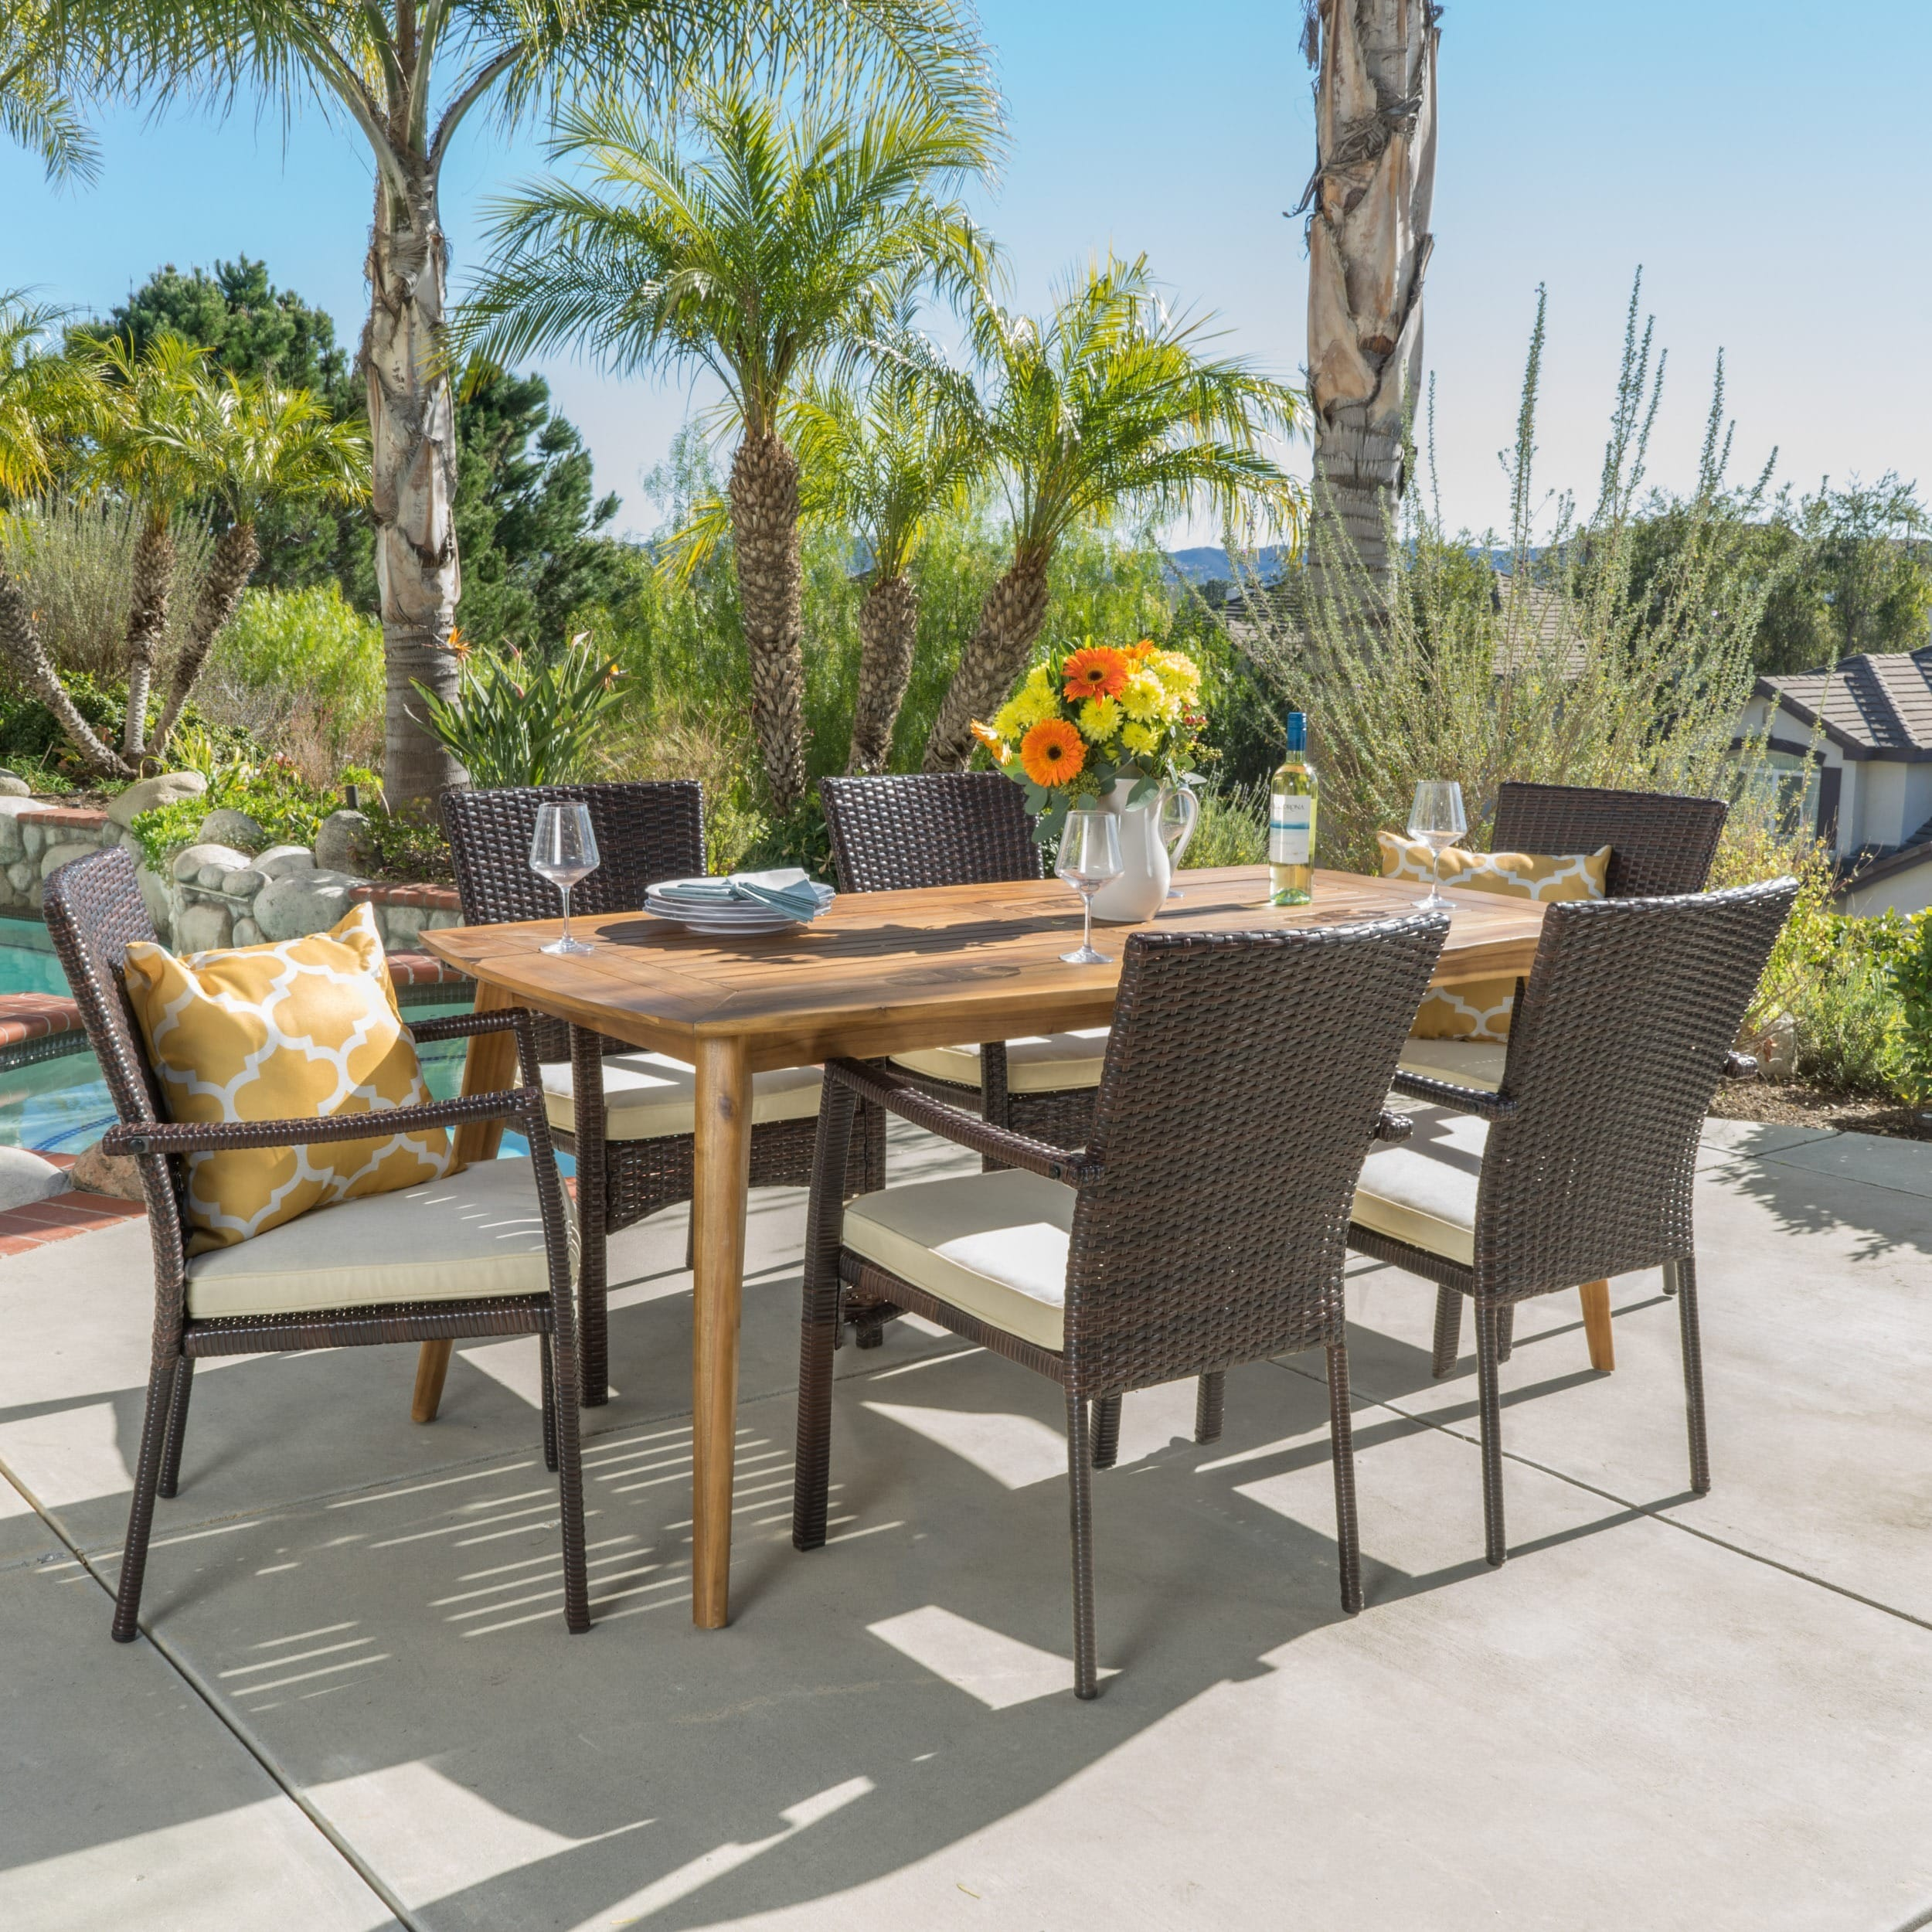 Shop talbot outdoor 7 piece wood rectangle dining set with cushions by christopher knight home on sale free shipping today overstock 14014305